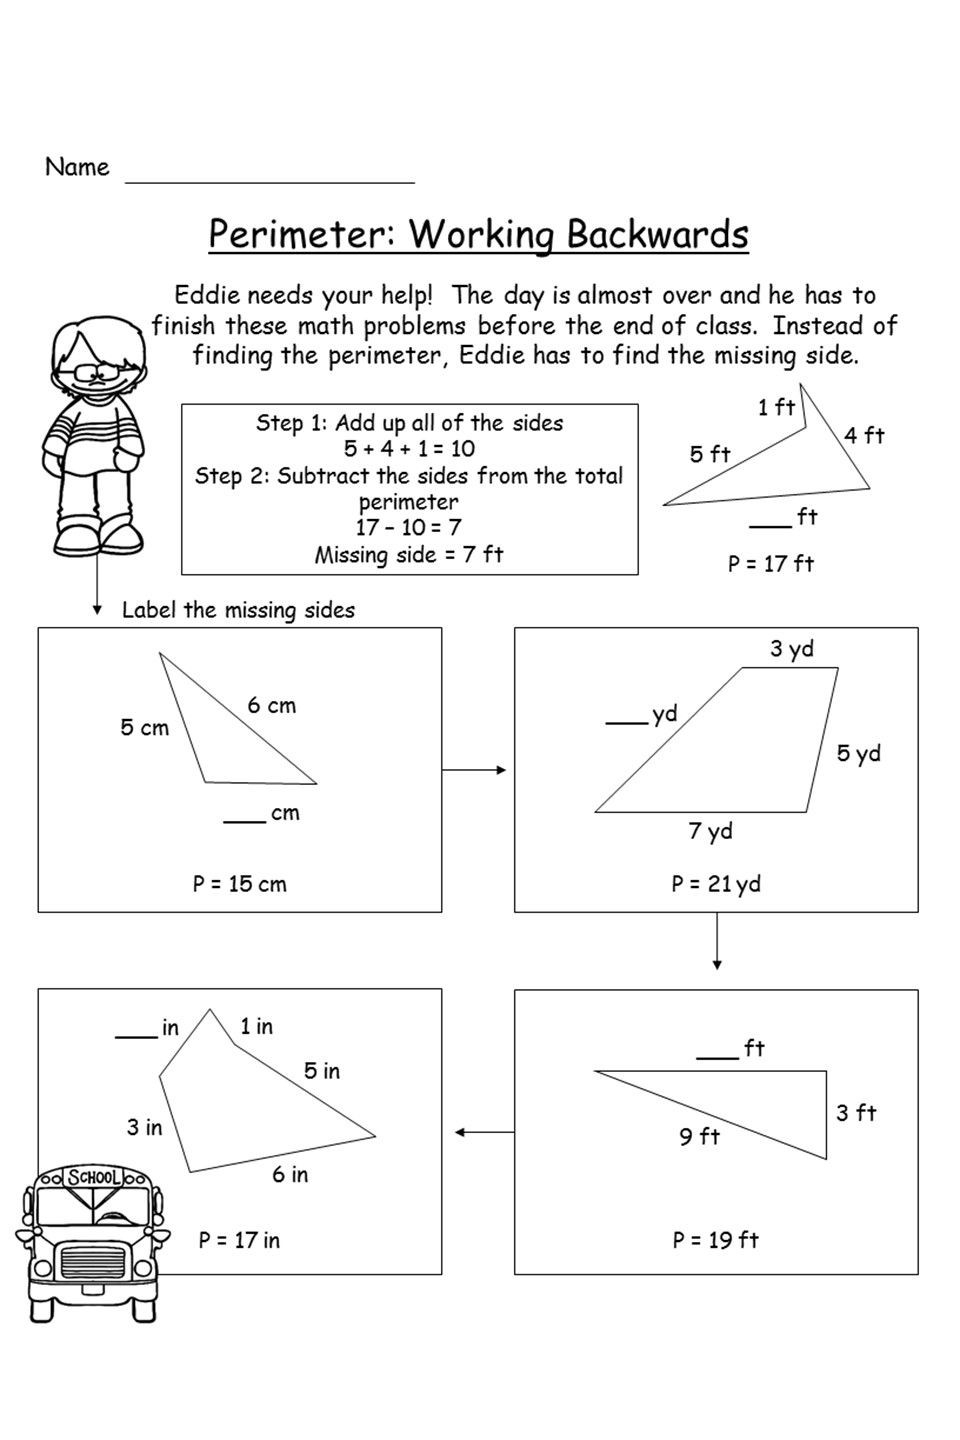 Perimeter Worksheet for 3rd Grade Perimeter Unit Activities Game Project and assessment In